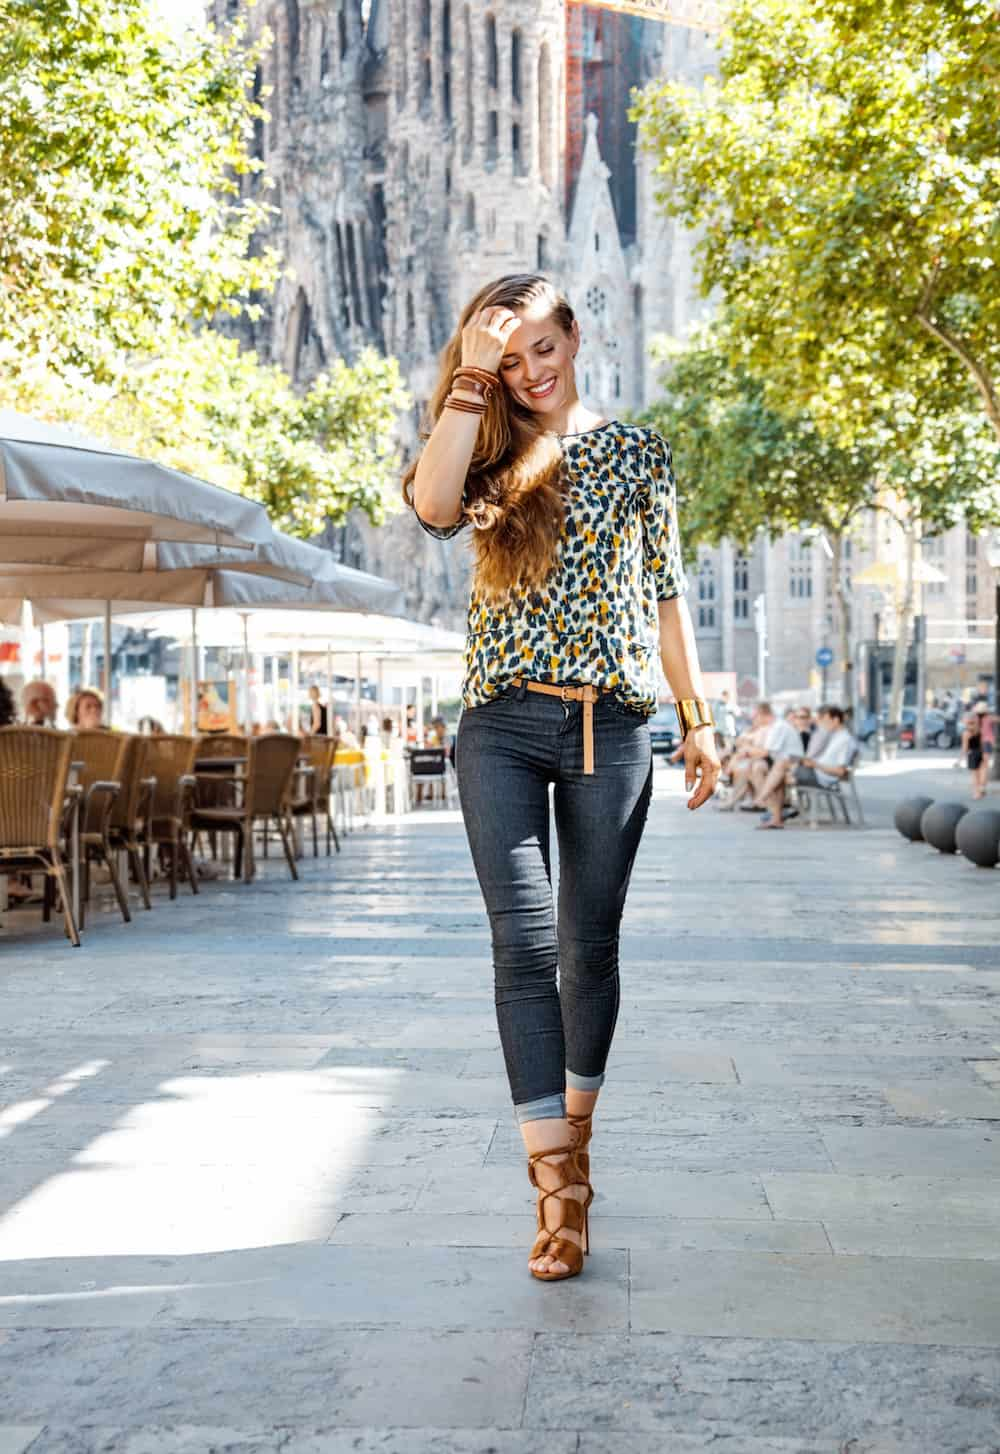 Christmas In July Ladies Outfits.How To Dress In Barcelona According To Season Latitude 41